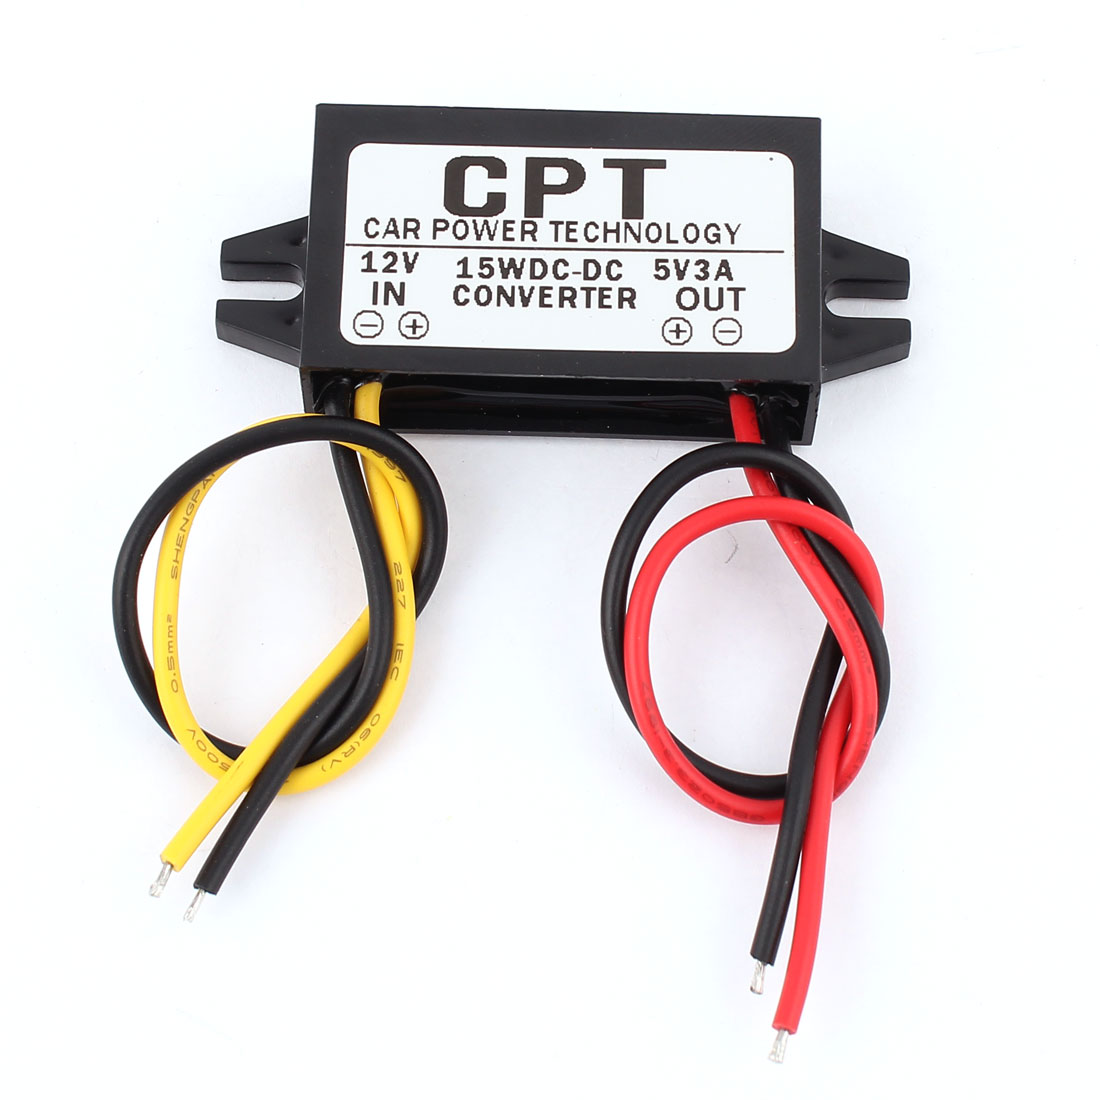 DC/DC 12 to 5V 3A 15W Step Down Converter Car Led Display Power Supply Module